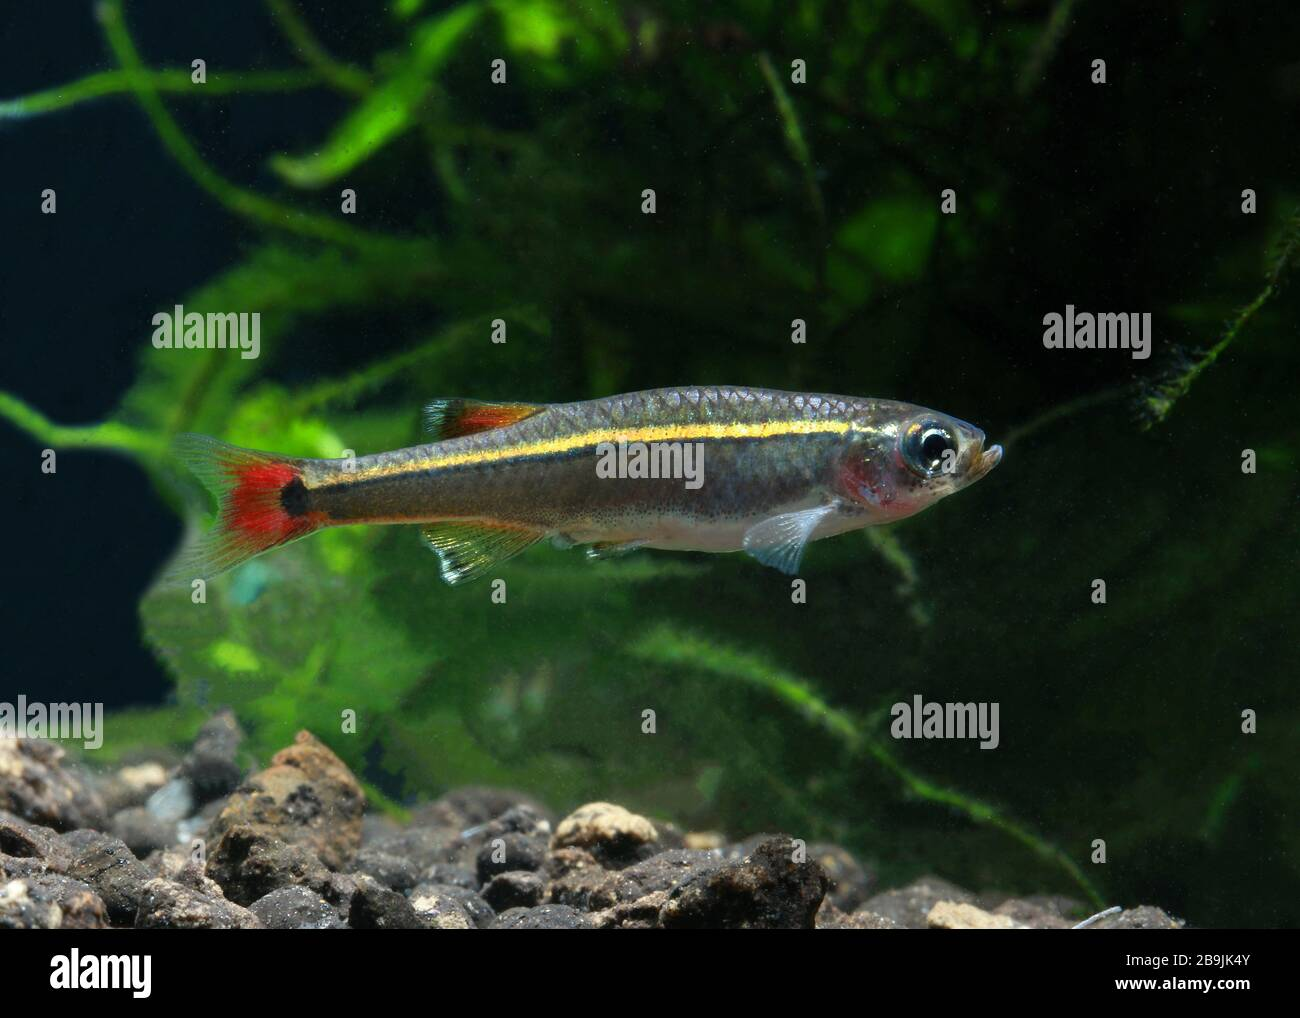 White Cloud Mountain Minnow High Resolution Stock Photography And Images Alamy,How To Cook Chicken Breast